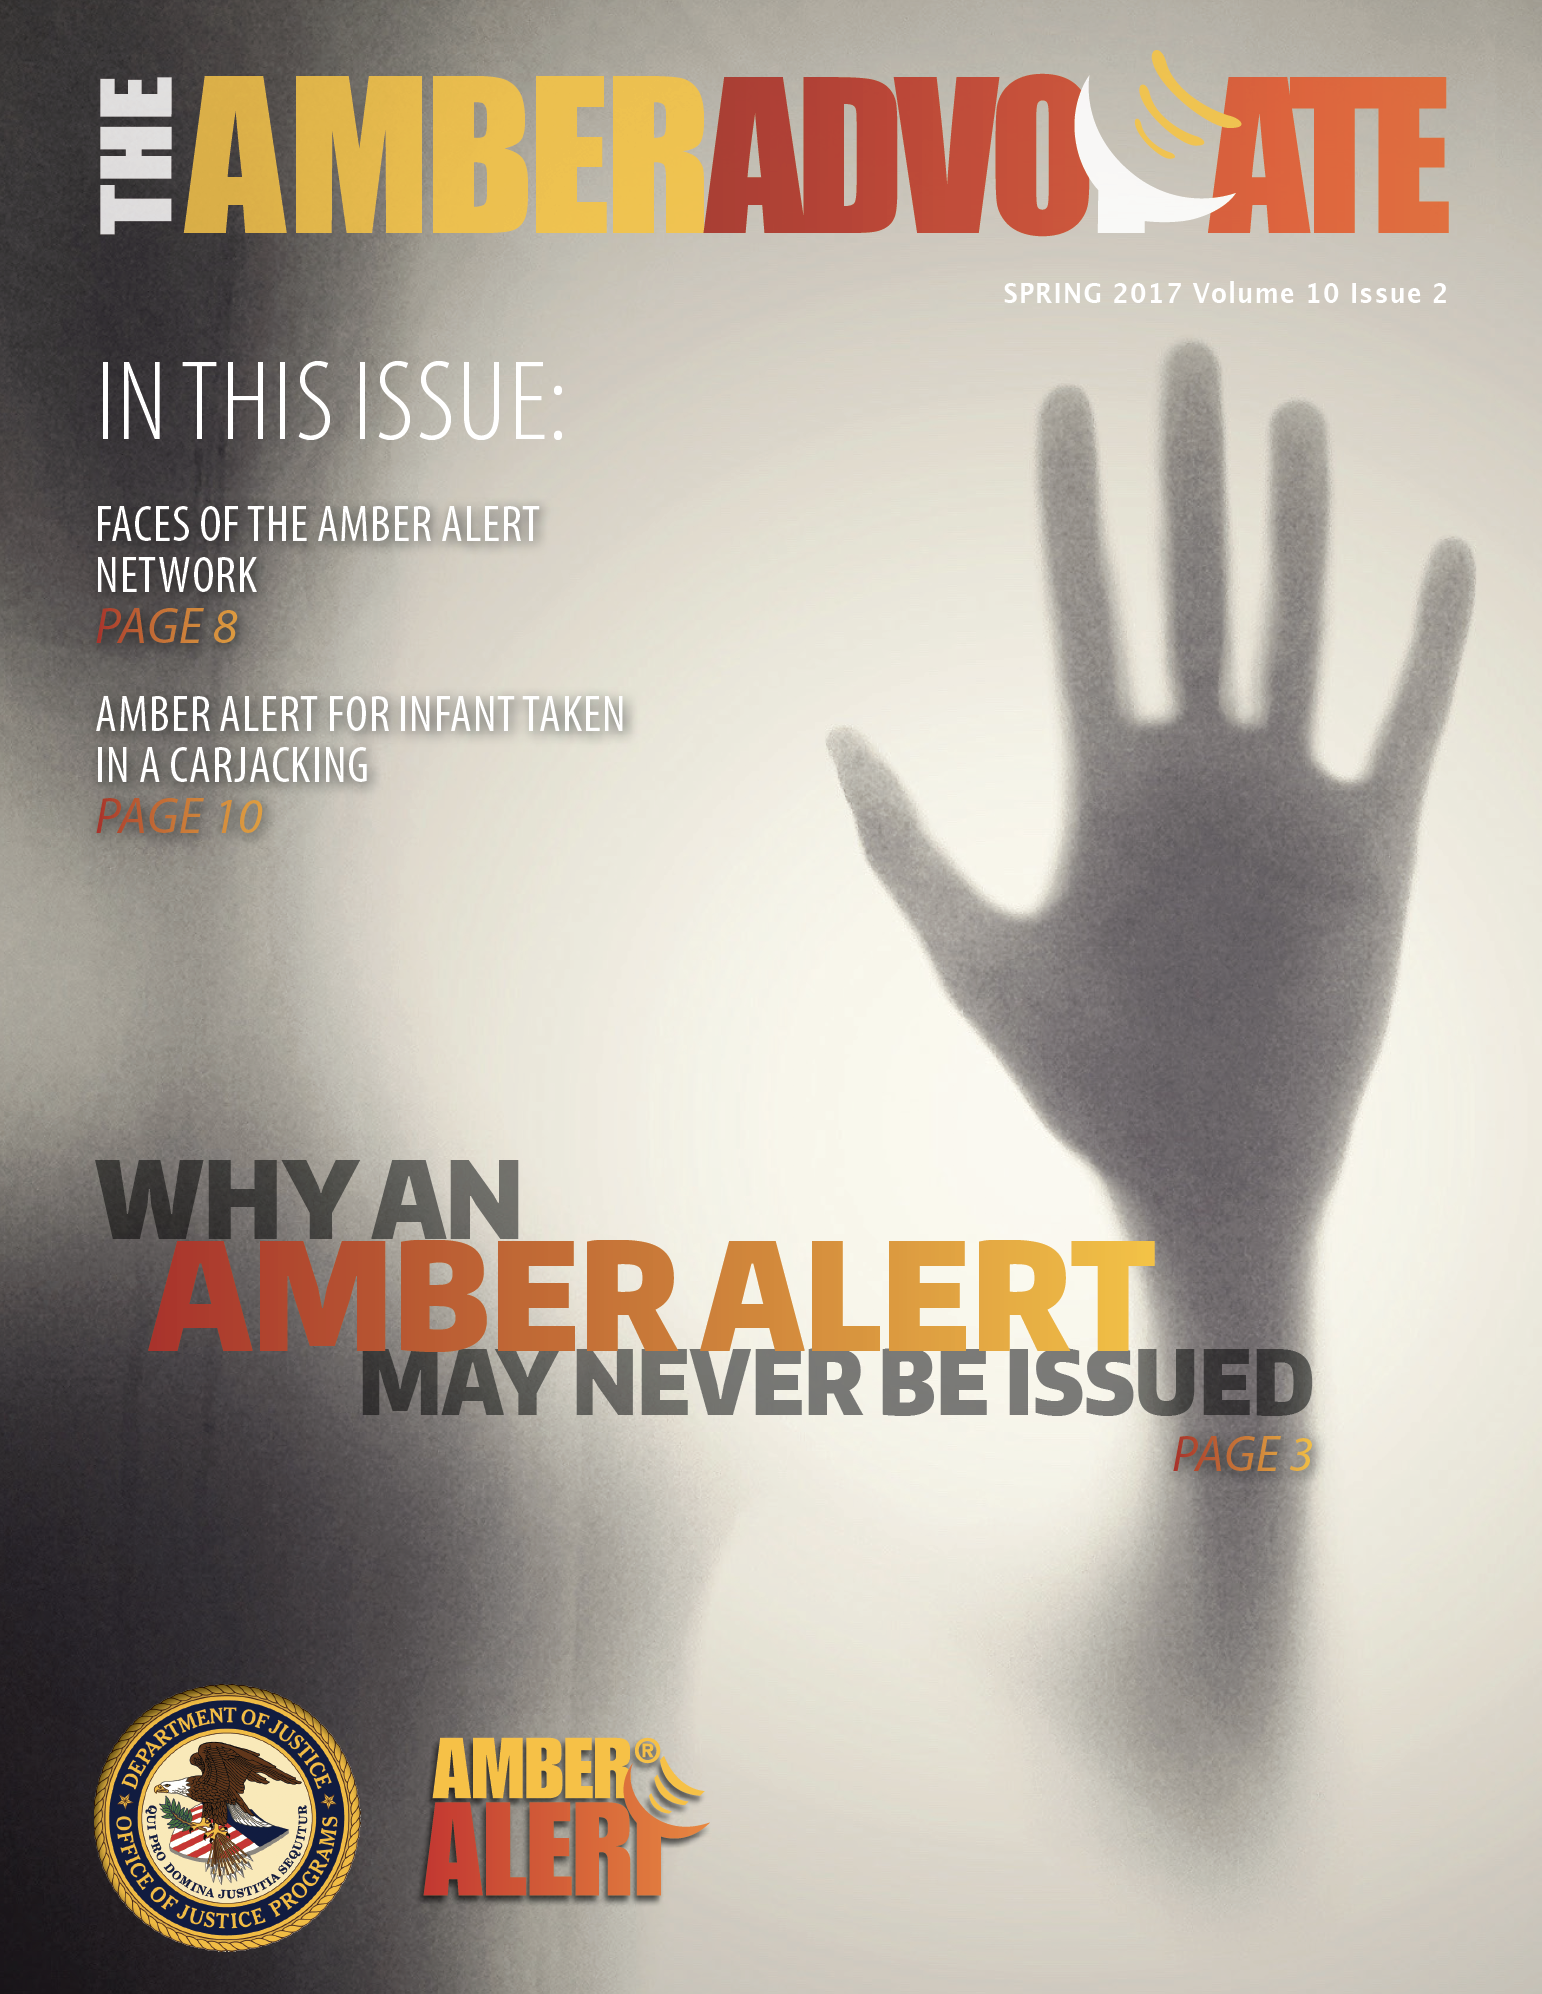 AMBER Advocate 30 cover